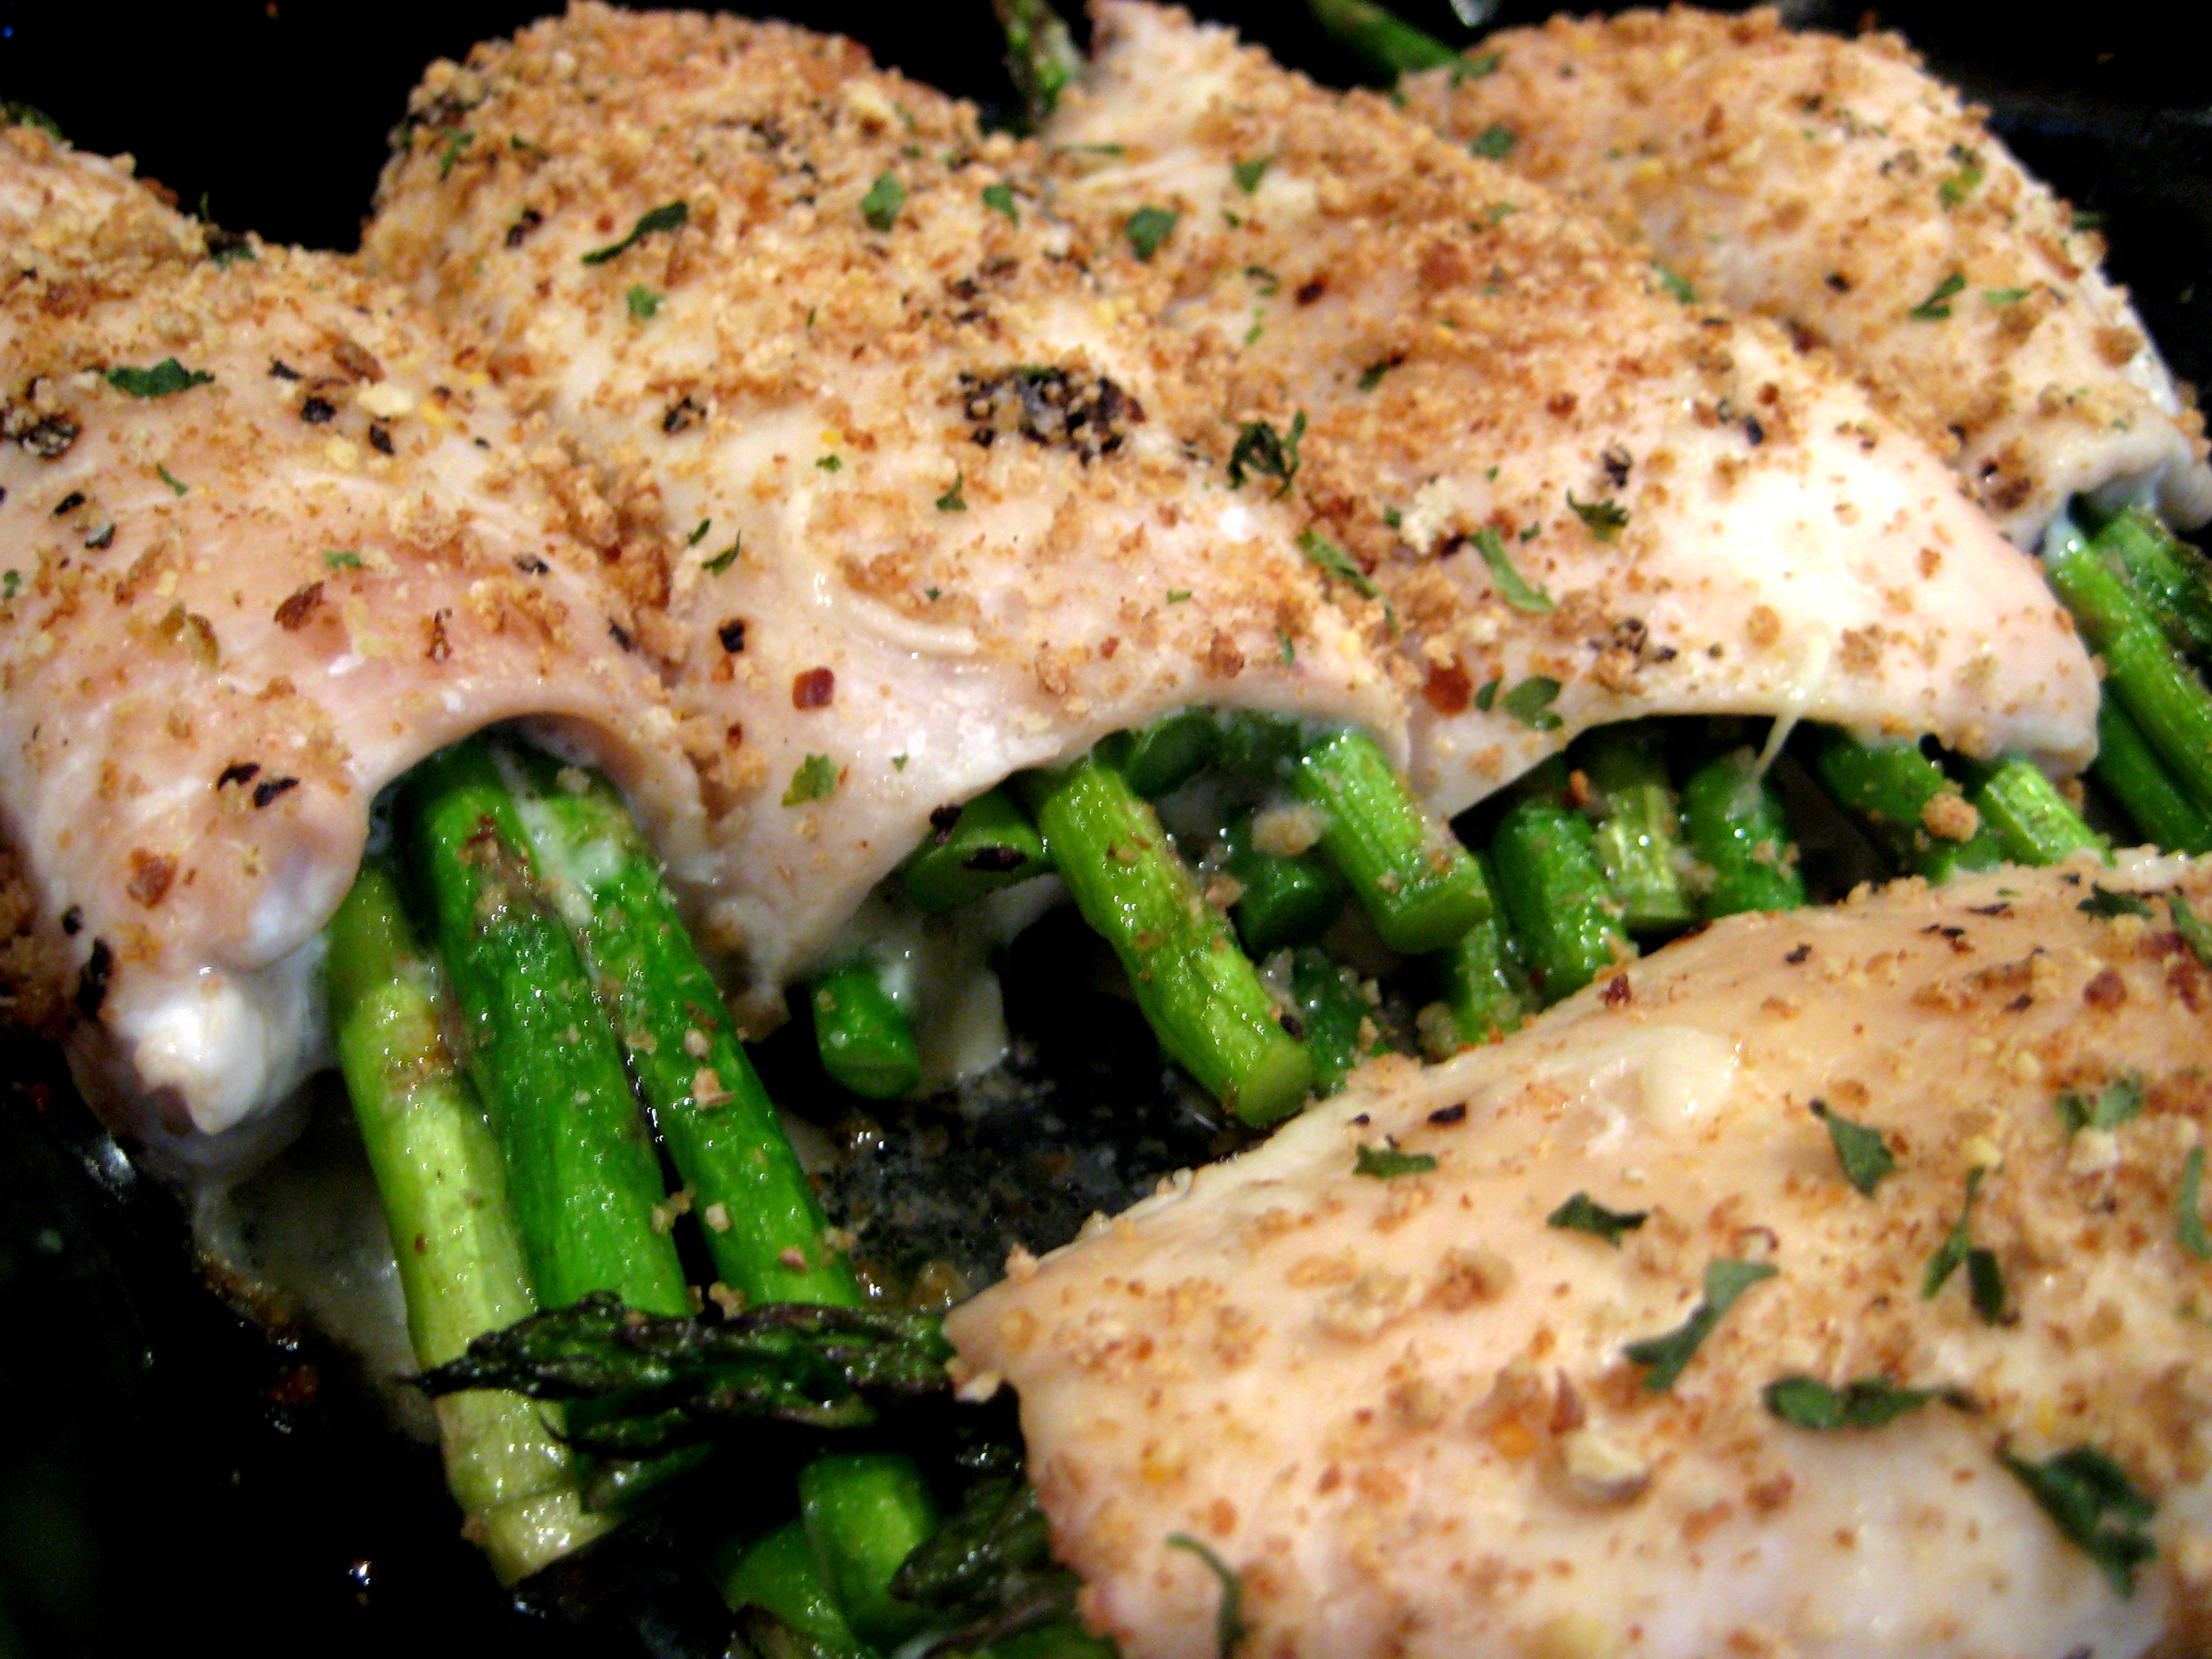 Chicken And Asparagus Recipe  Grilled Chicken Asparagus 21 Day Fix Approved Adventures